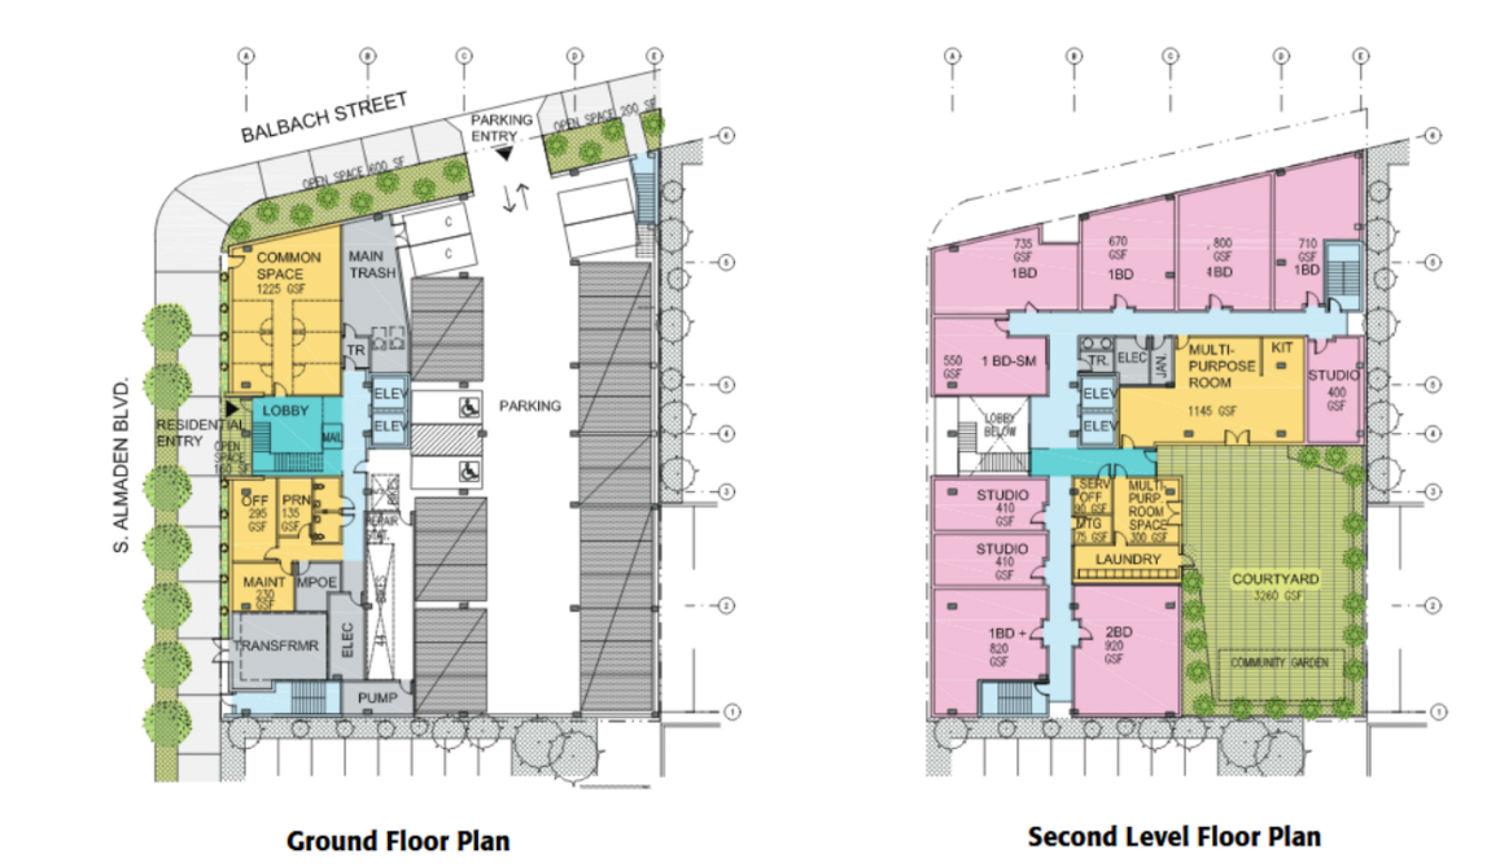 500 South Almaden Boulevard floor plan, design by LMS Architects